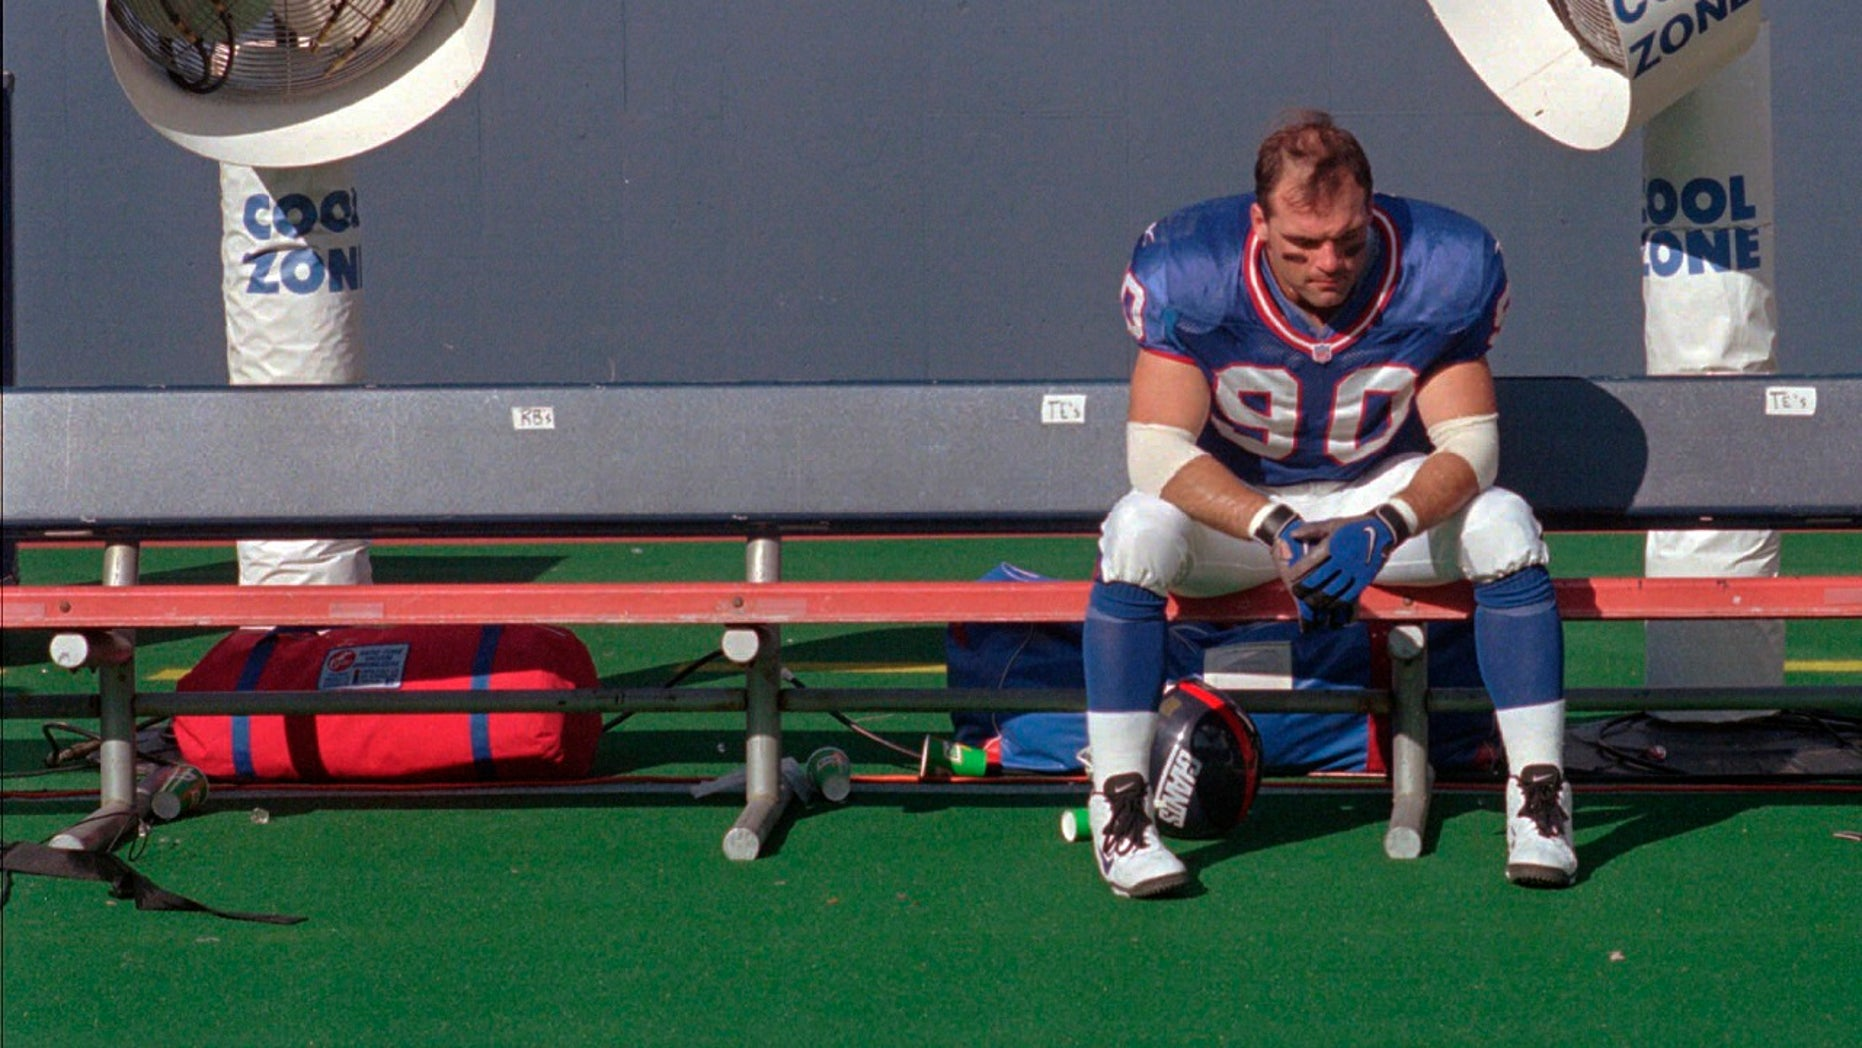 """Former New York Giants linebacker Corey Widmer said concussions he suffered while playing football """"destroyed my life."""""""